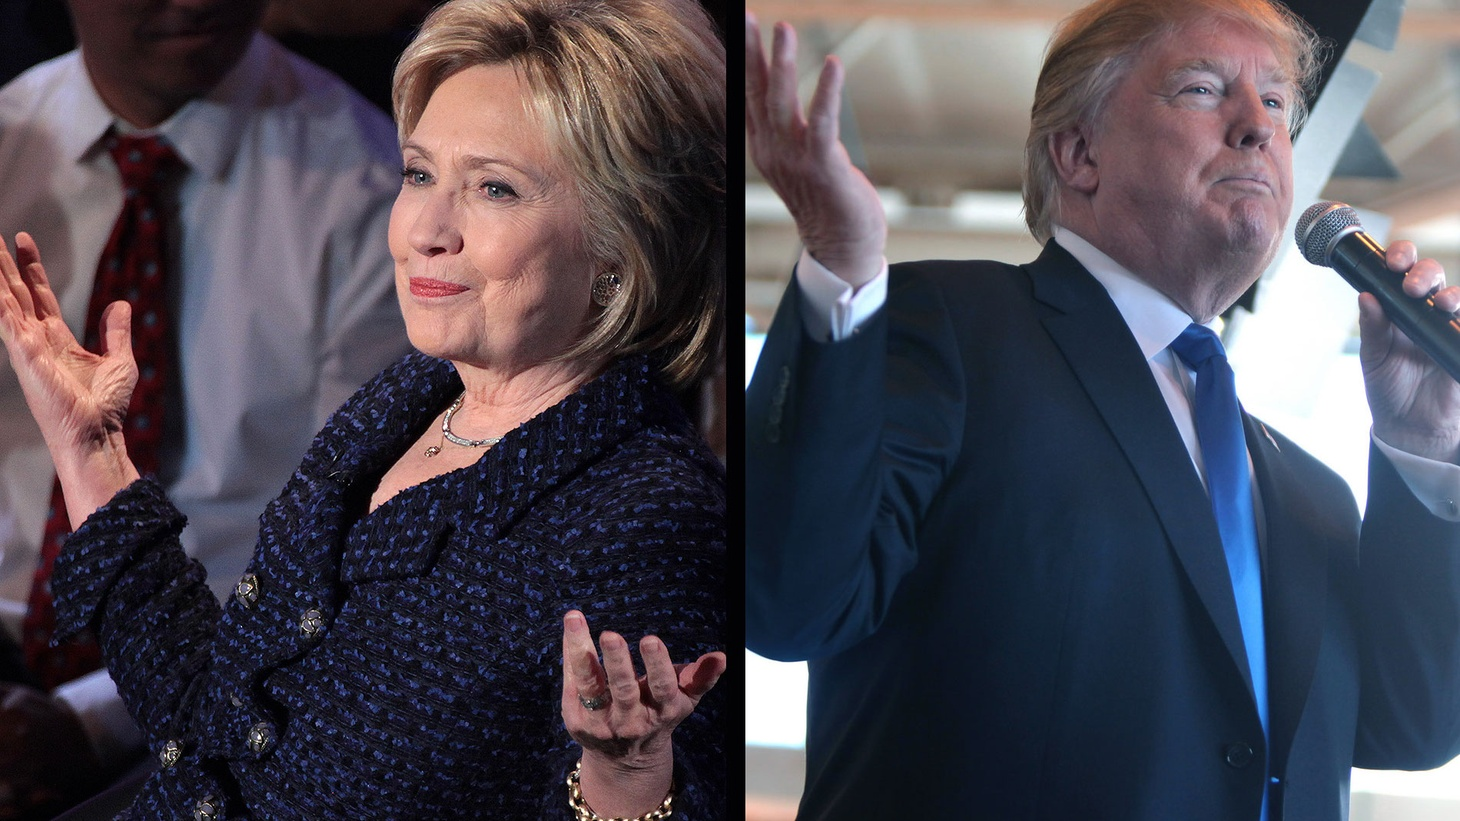 NPR News' live, anchored special coverage and analysis of the presidential debate, Monday, September 26 from 6-8pm.